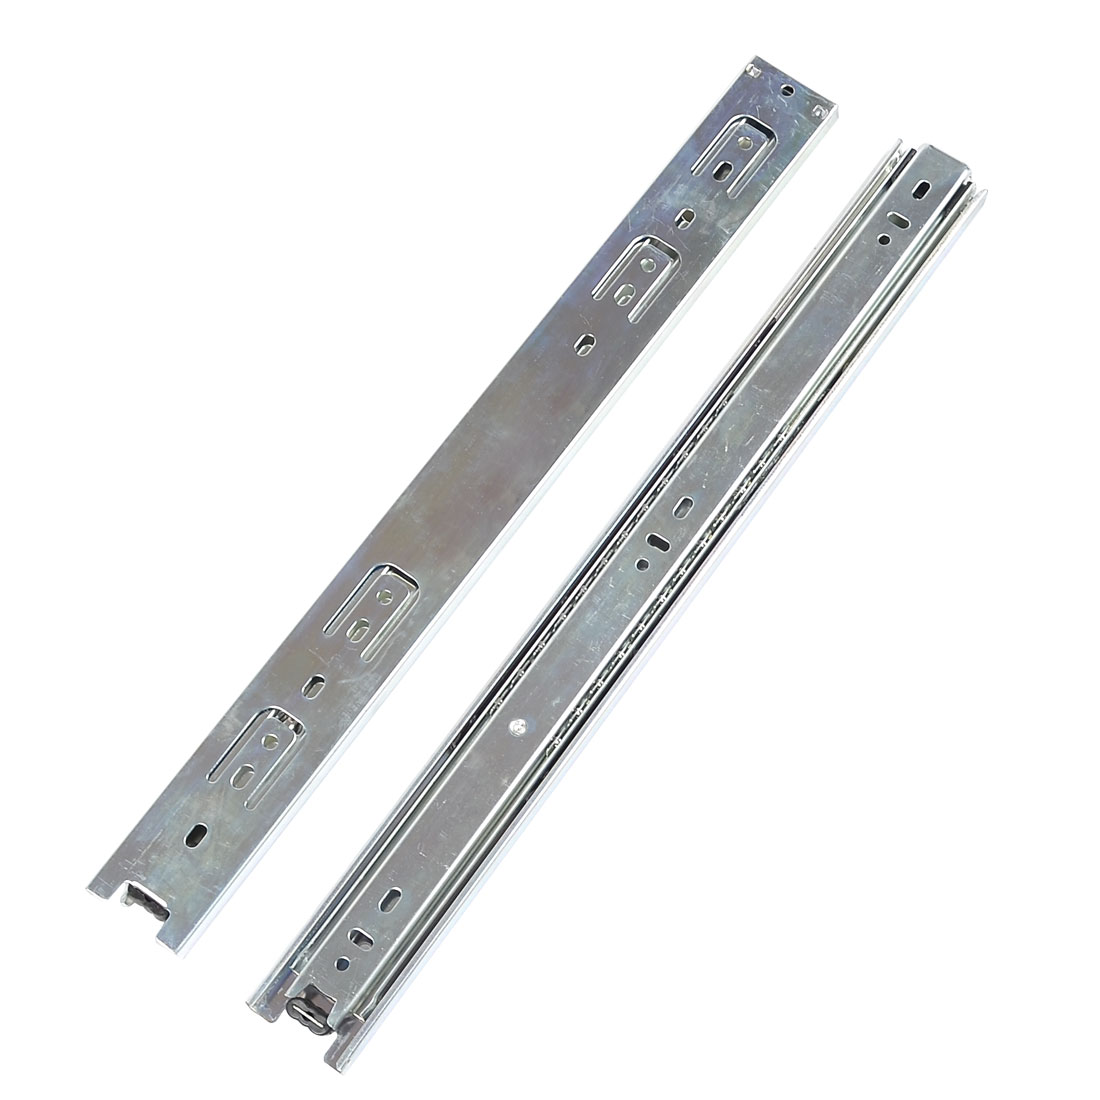 "2 Pcs Metal 3 Sections Ball Bearing Cupboard Drawer Slide 16"" Length"